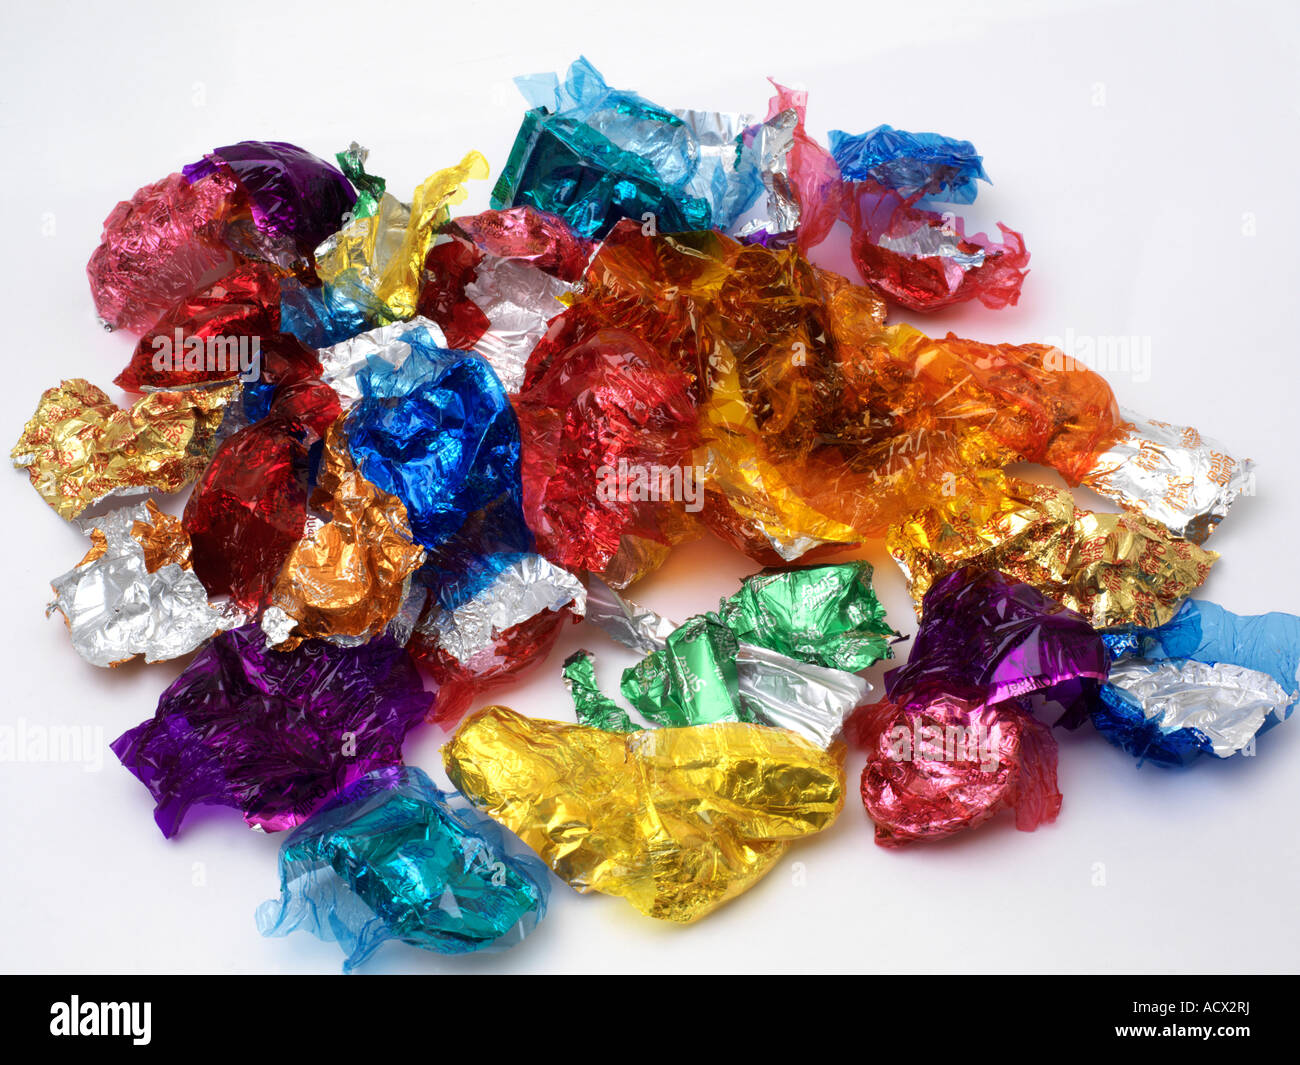 Pile of Sweet Wrappers - Stock Image